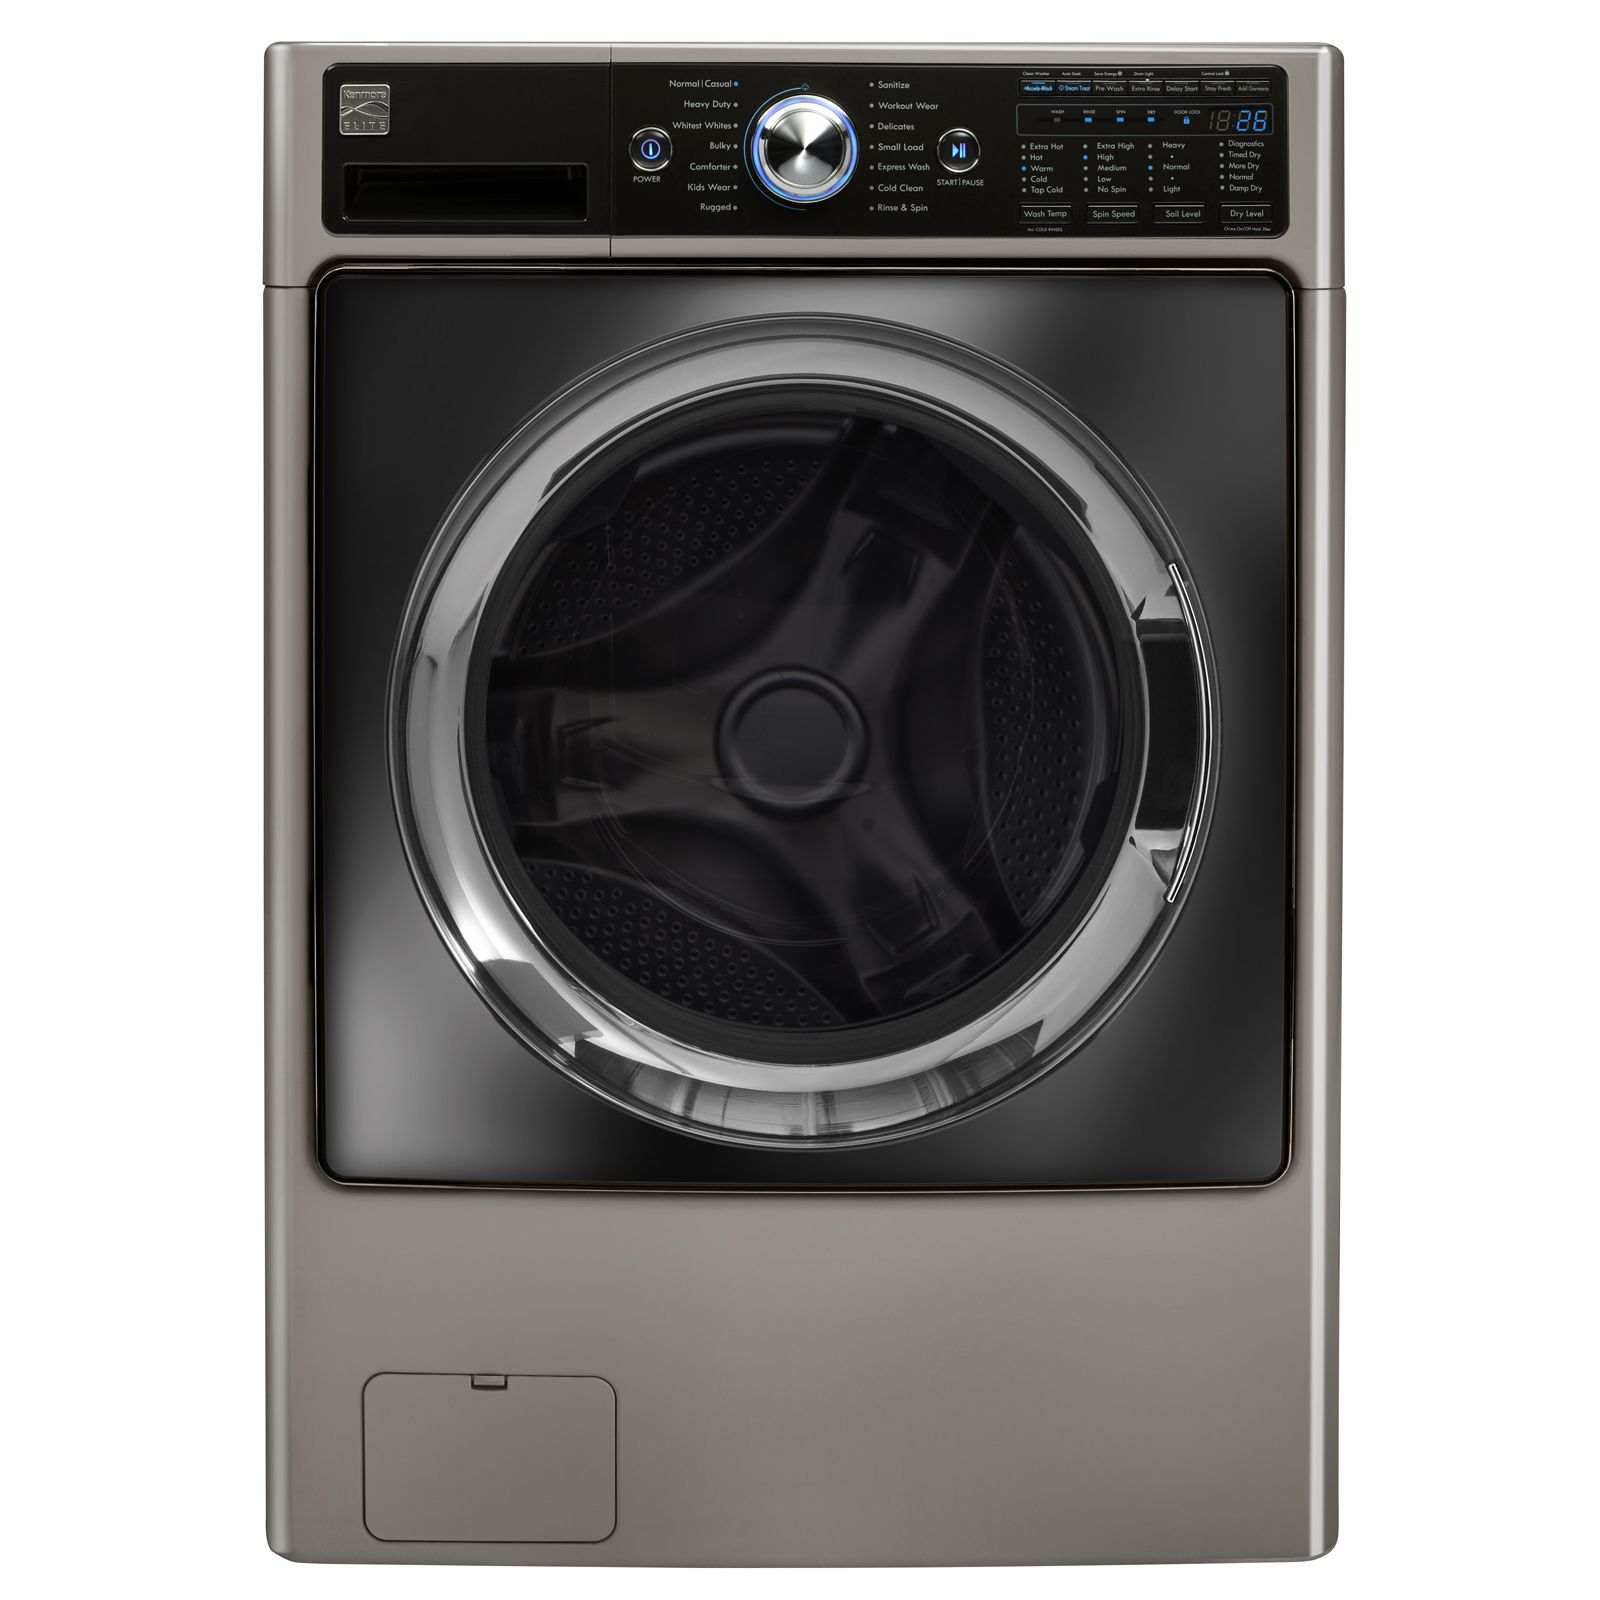 Kenmore Elite 41003 Washer And Dryer Combo The Best Wash And Dry In One Machine Combination Washer Dryer Washer Dryer Combo Kenmore Elite